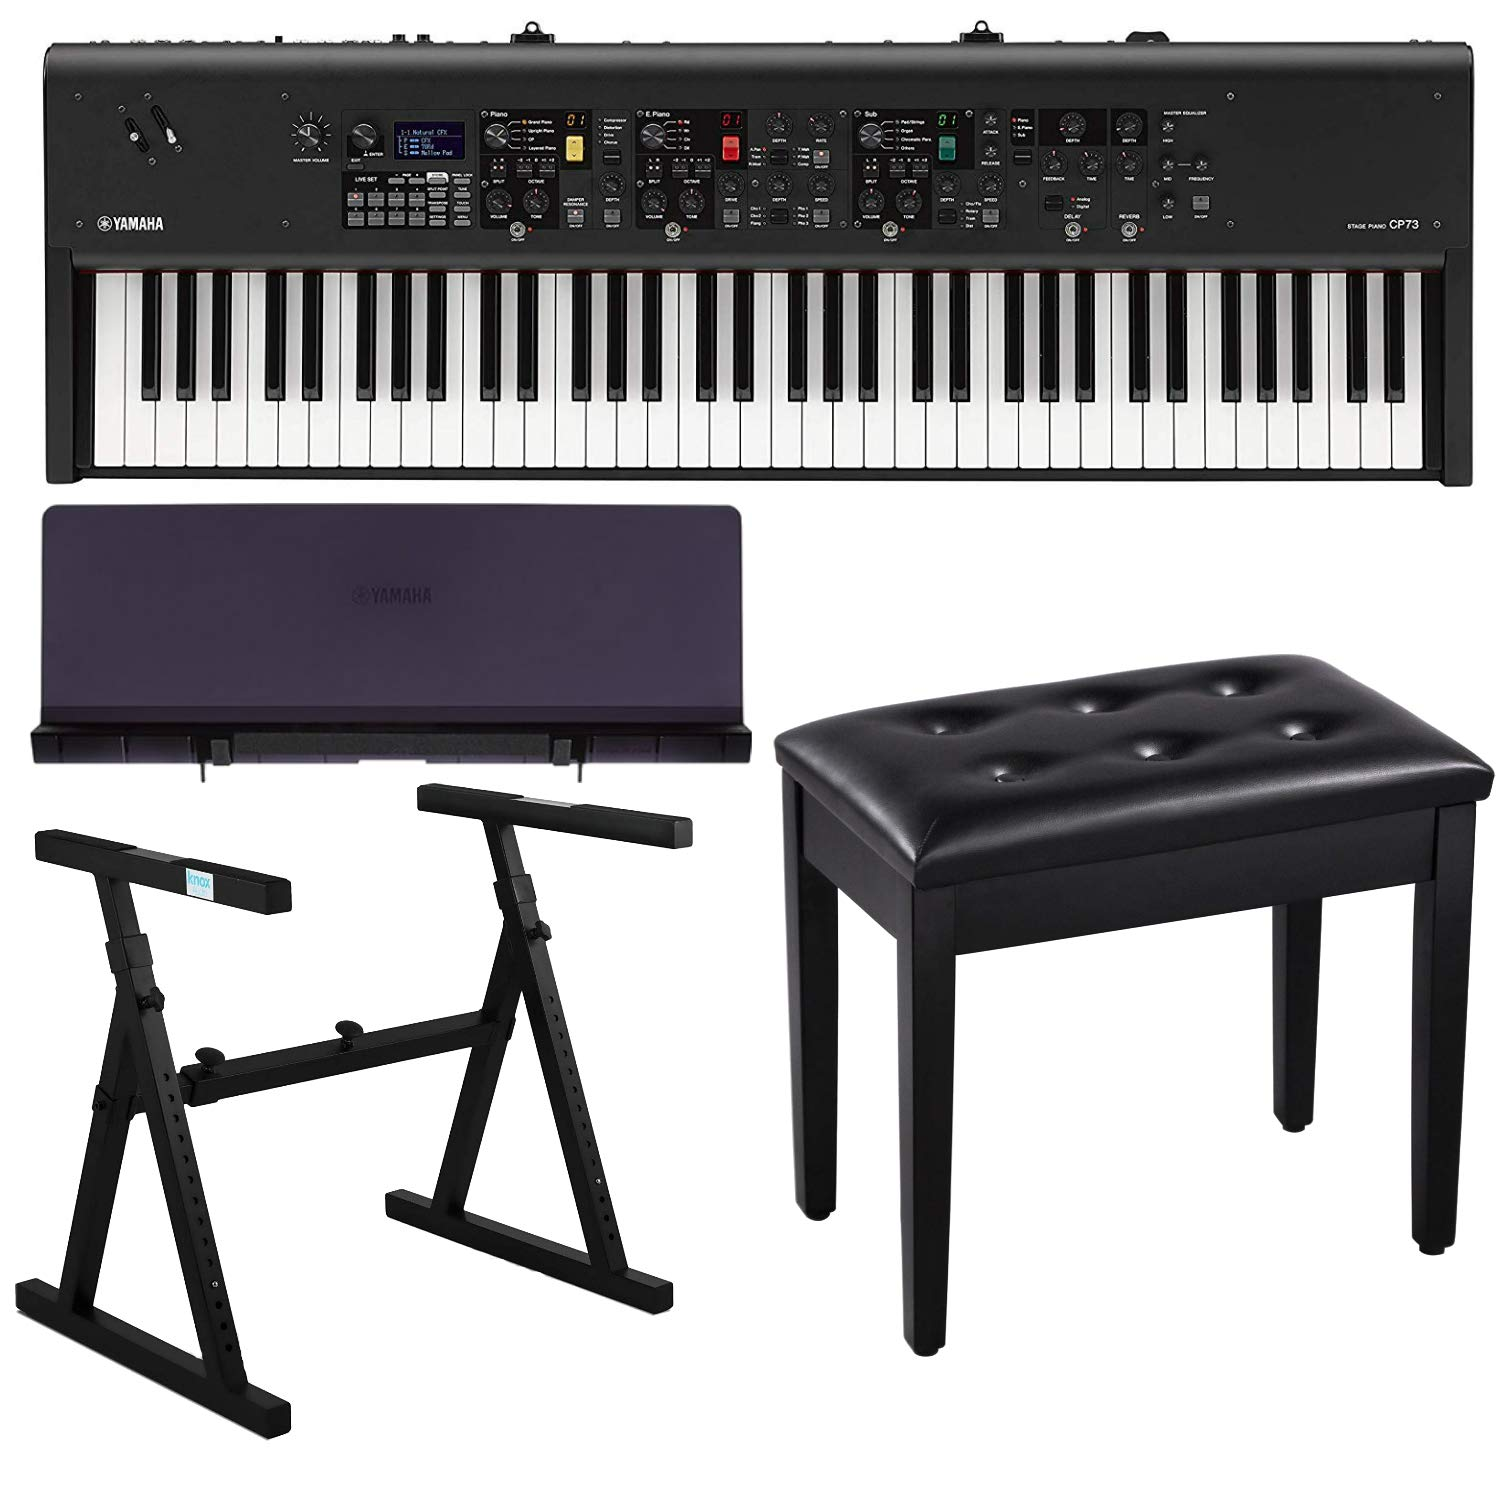 Yamaha CP73 73-Key Stage Piano Bundle with Heavy Duty Z-Stand, Black Padded Piano Bench with Storage and Music Rest by Yamaha-Keyboards